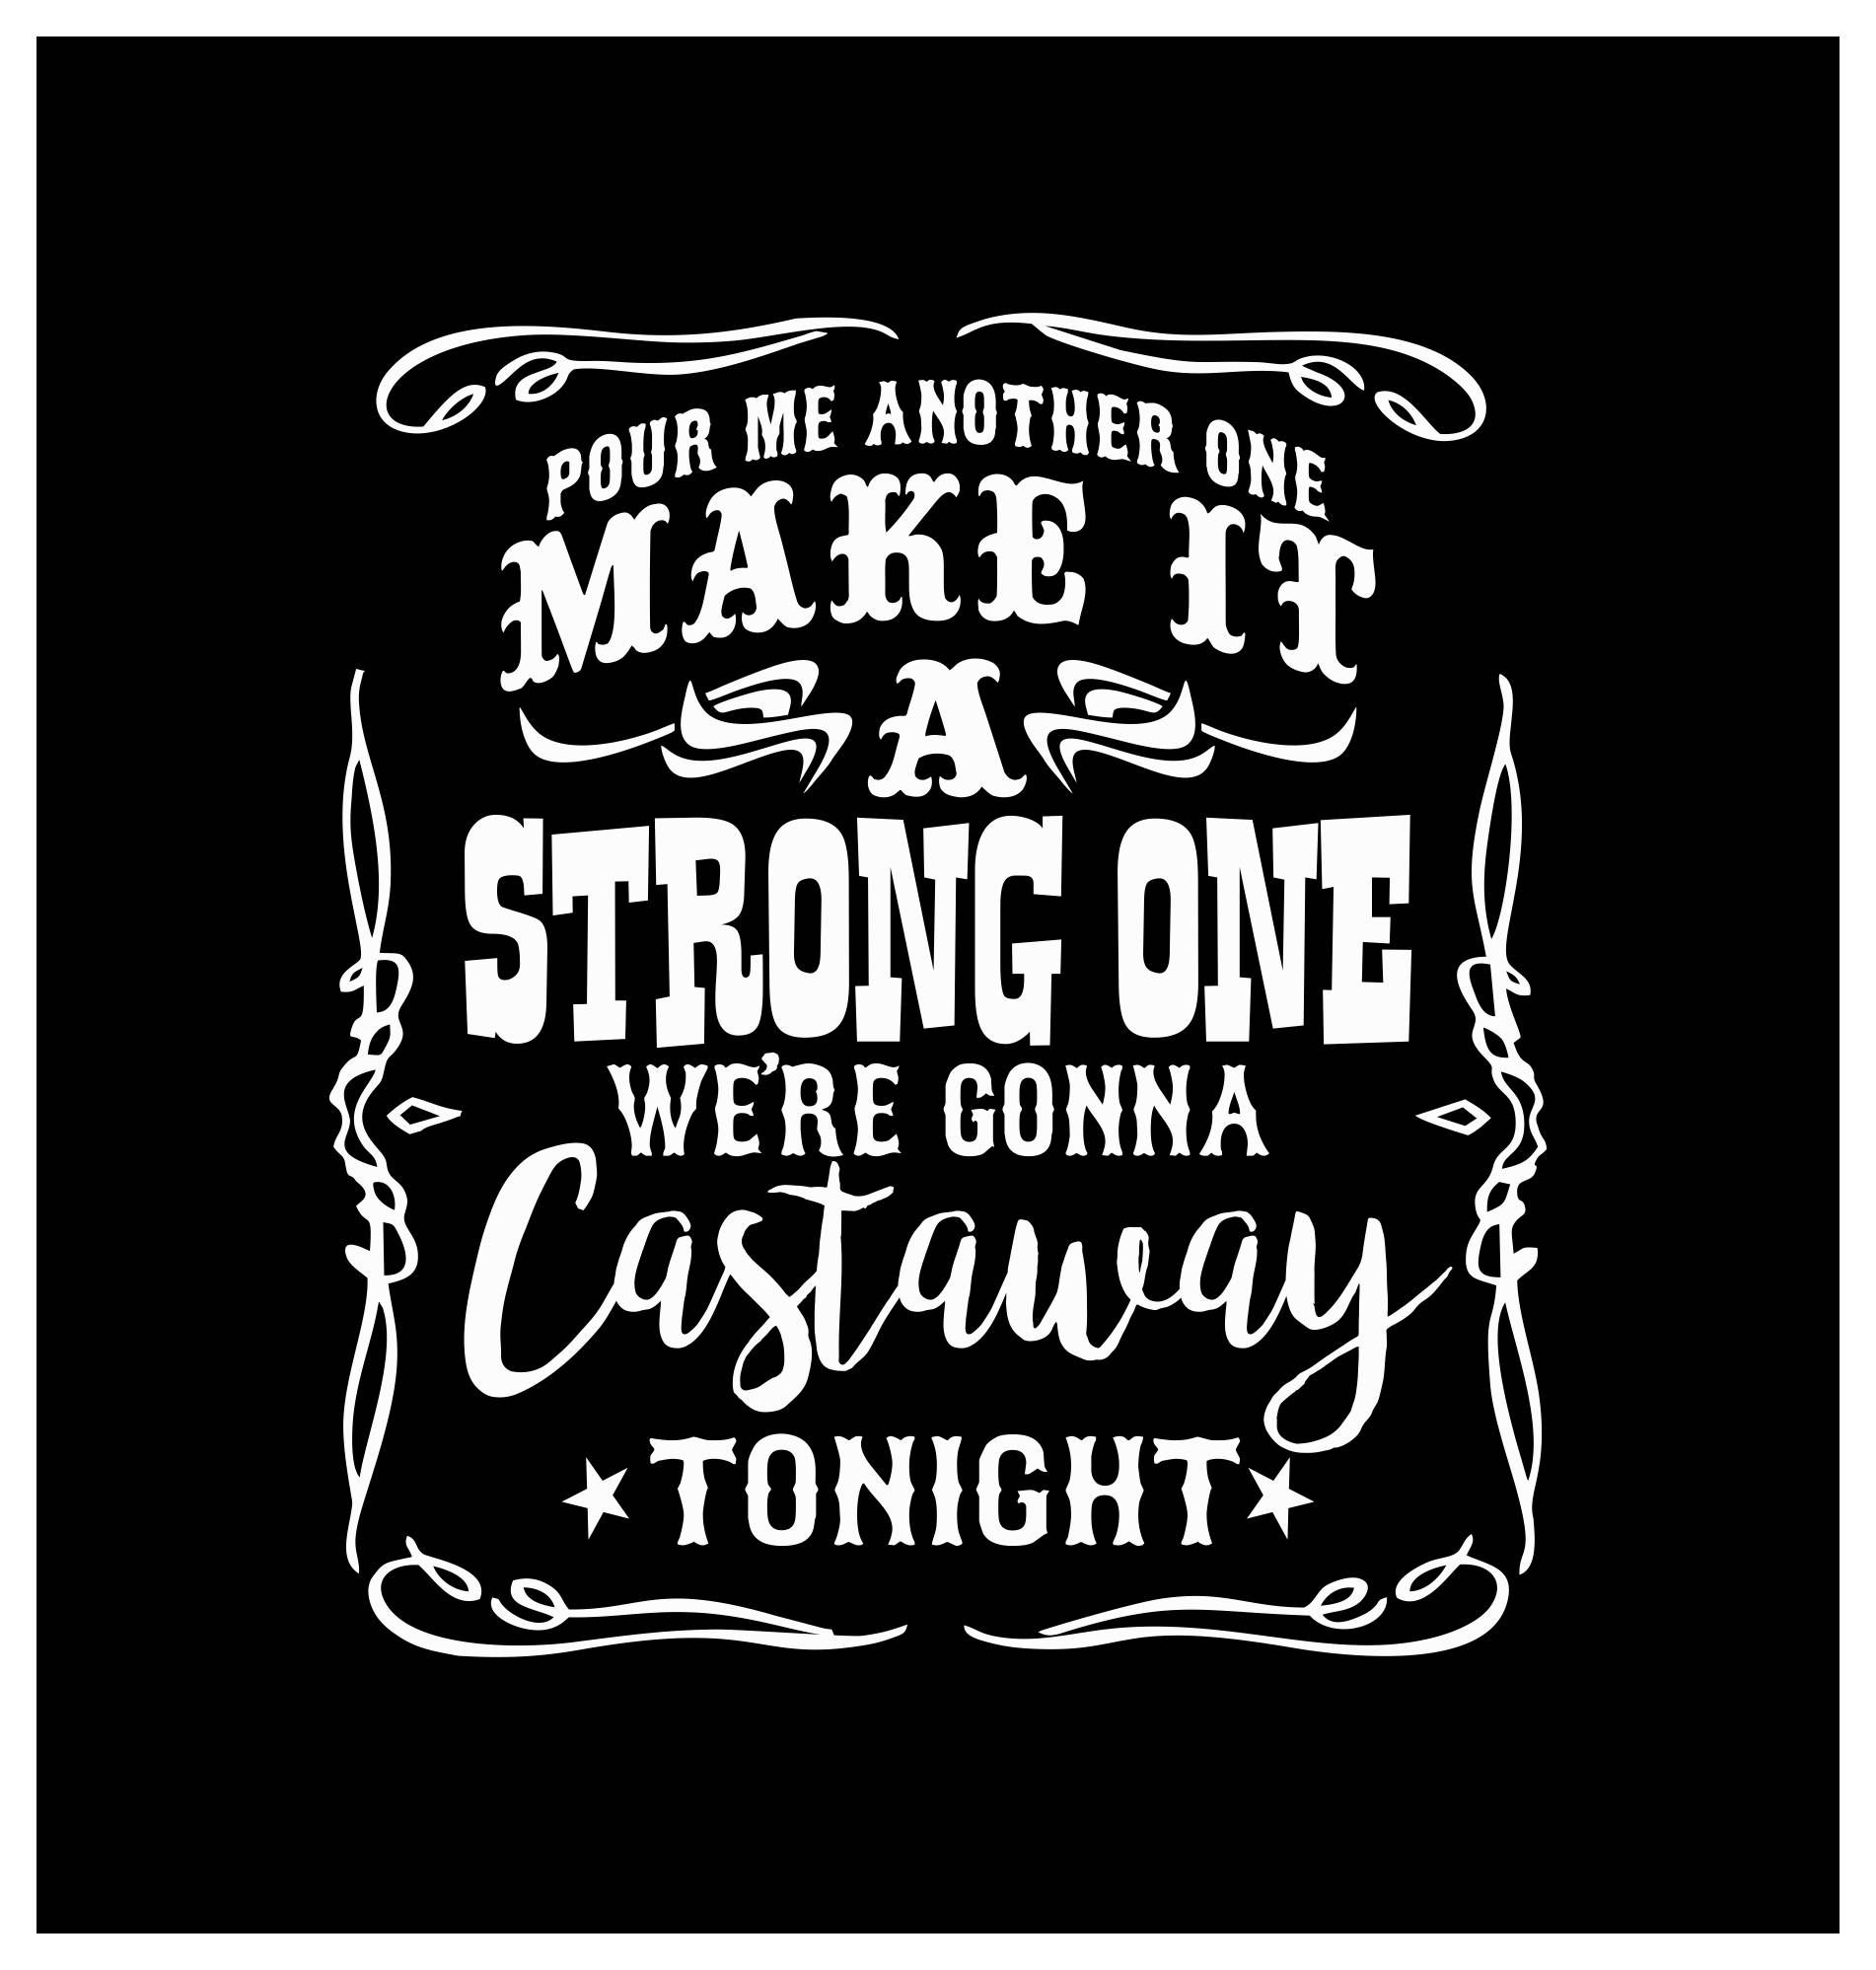 Pour Me Another One Make It A Strong One Castaway Tonight Etsy Zac Brown Band Glitter Heat Transfer Vinyl Band Quotes